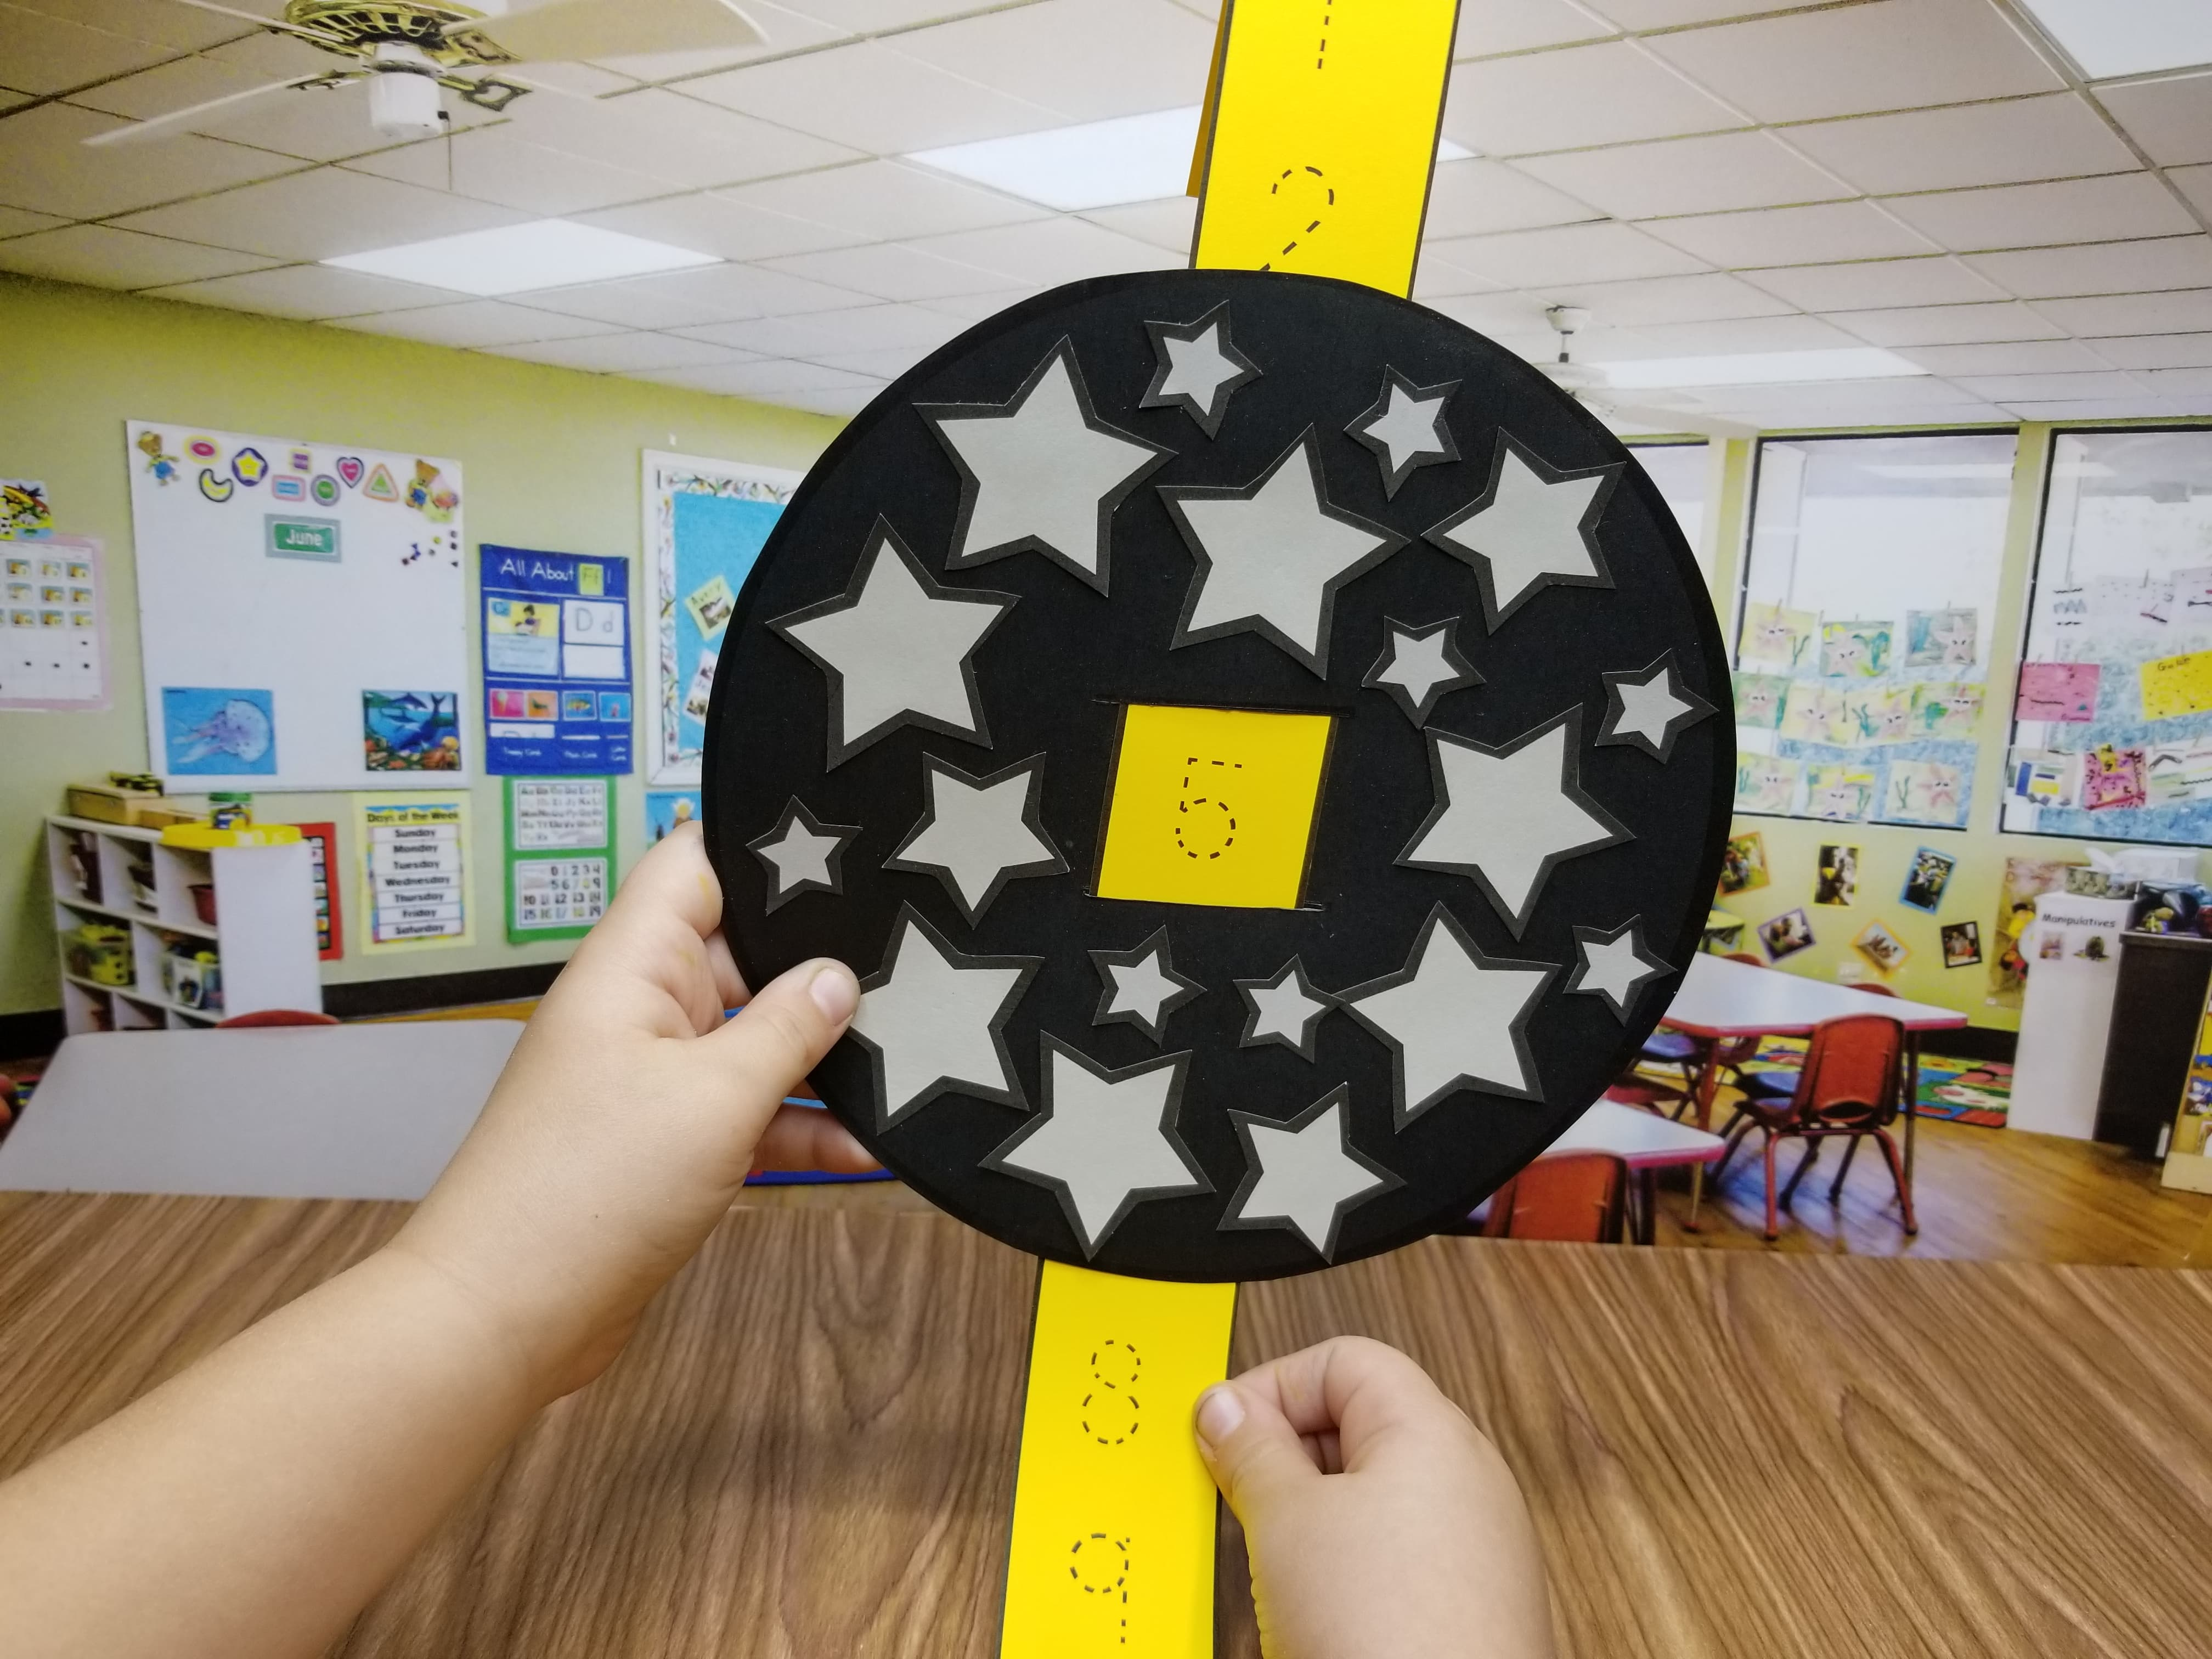 Countdown to the new year with this Countdown Ball! Students will put stars, trace the numbers, and then countdown to the new year from 20!